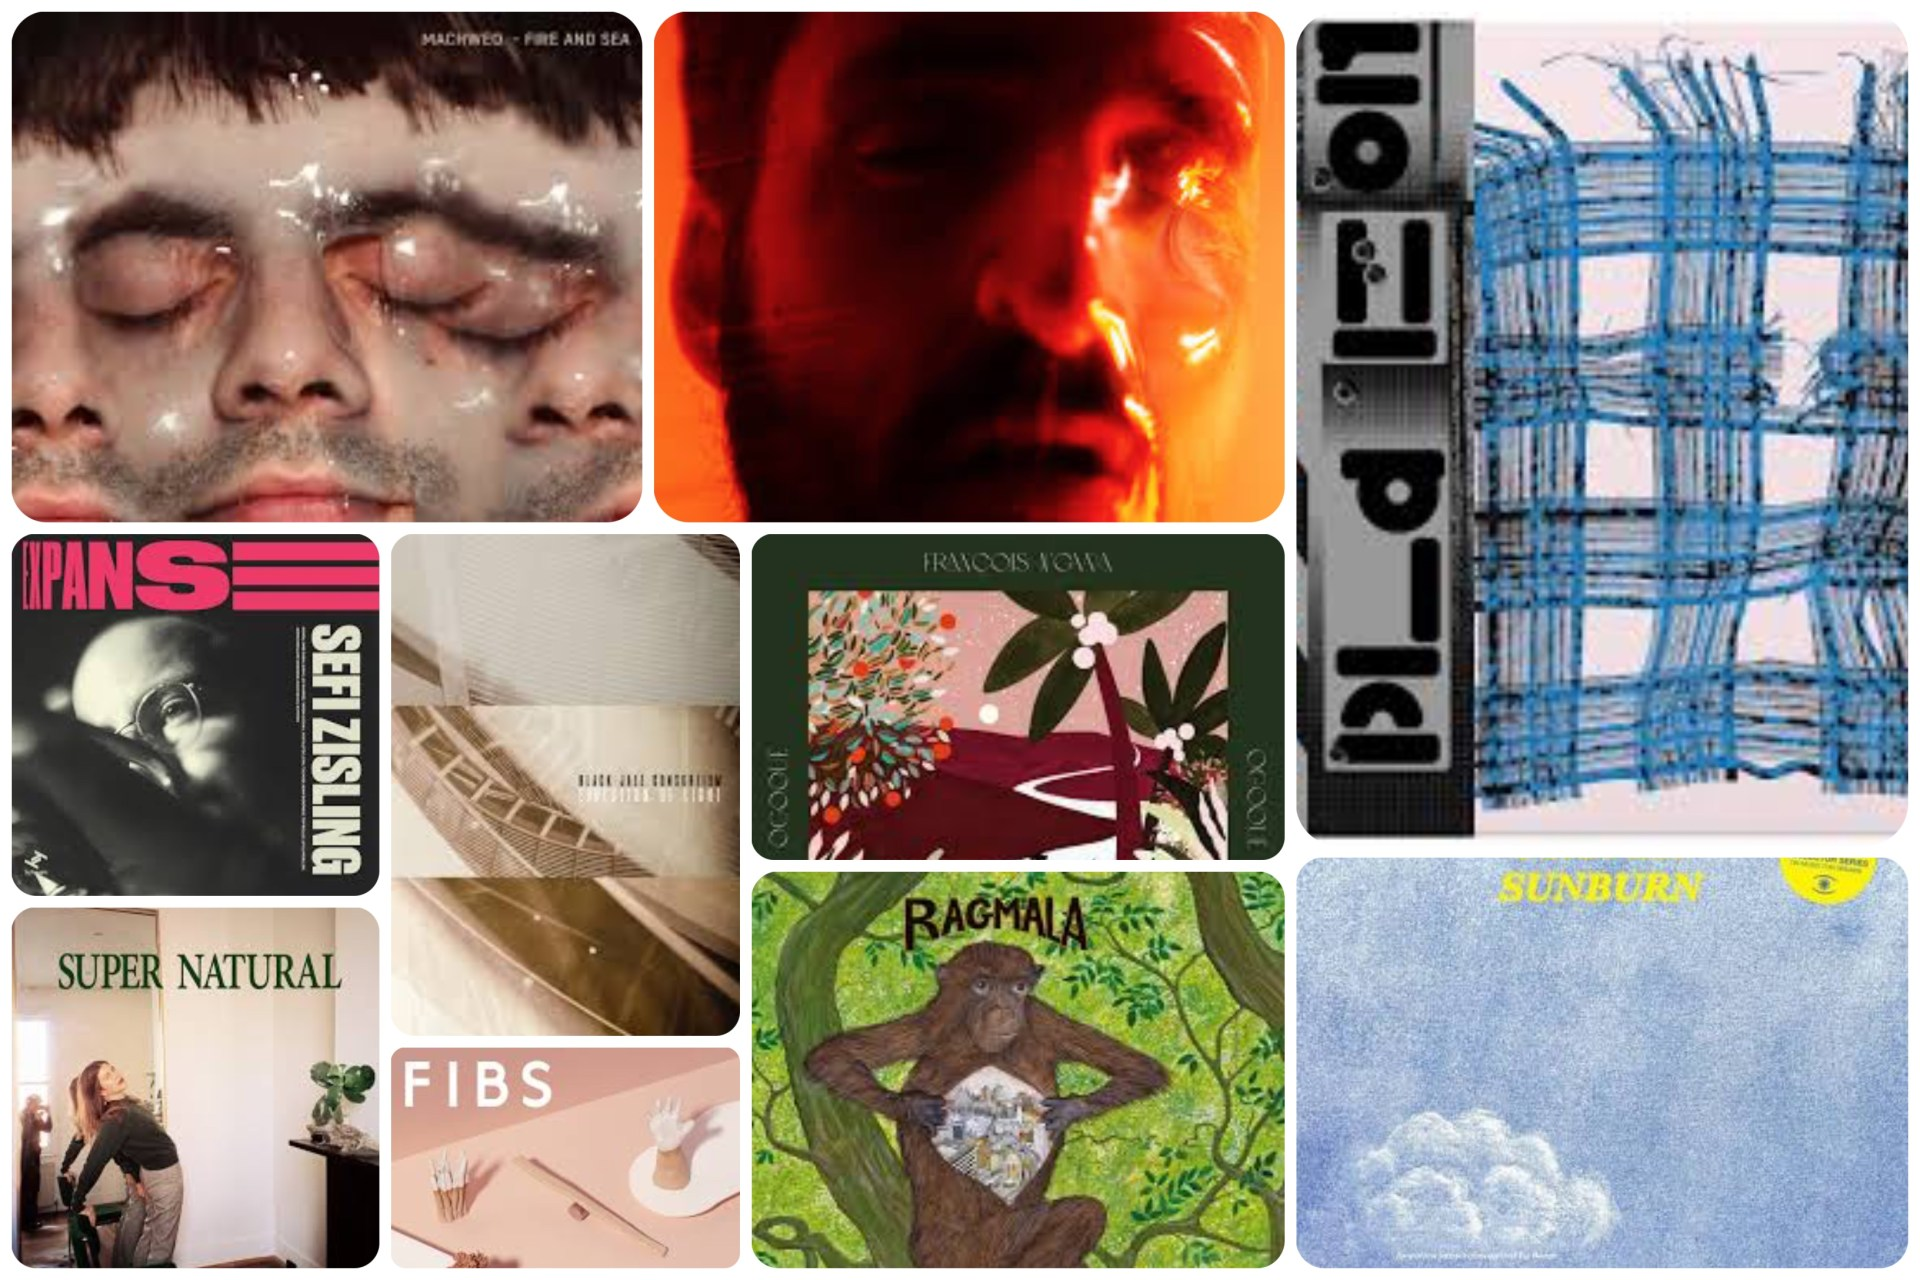 Our weekly mini-guide to the best albums you need to hear.